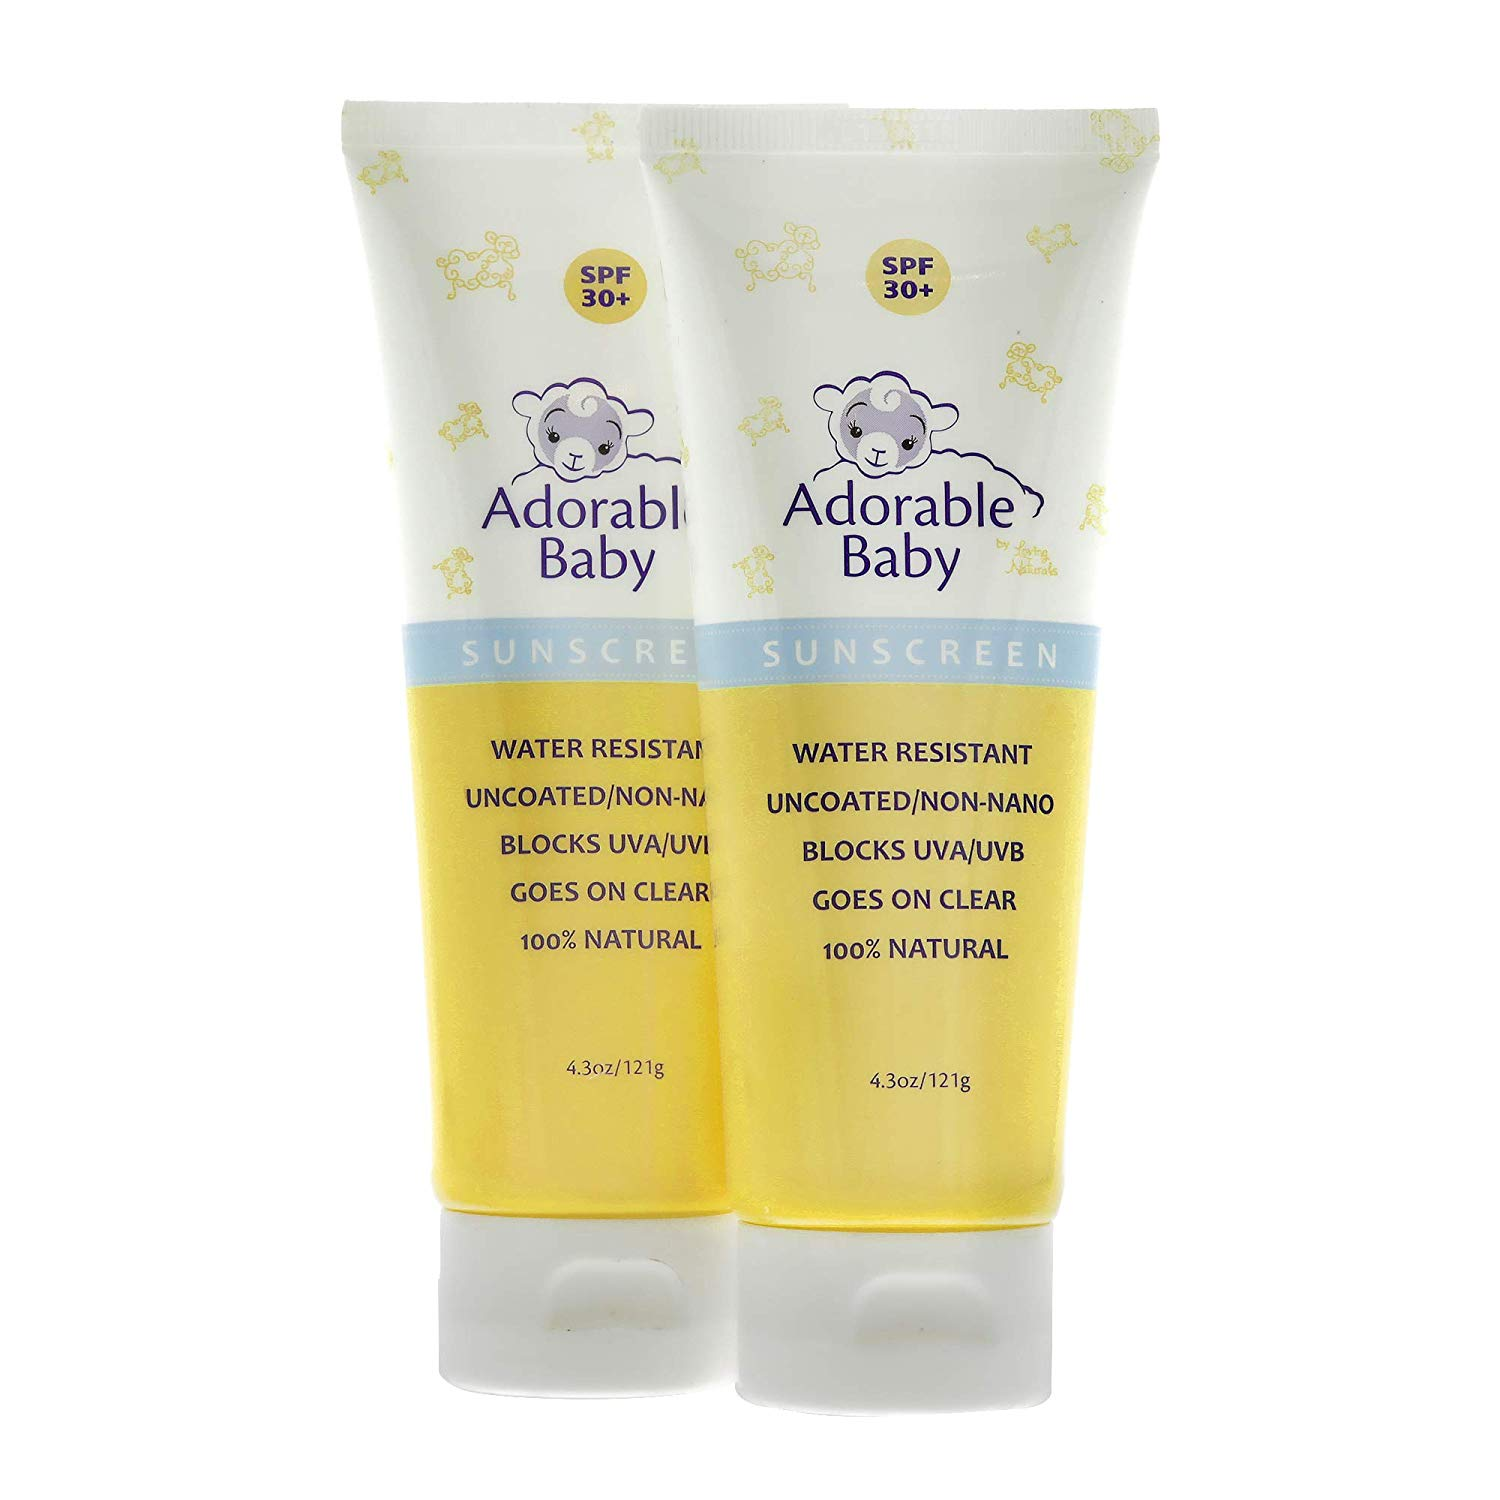 Adorable Baby All Natural Sunscreen